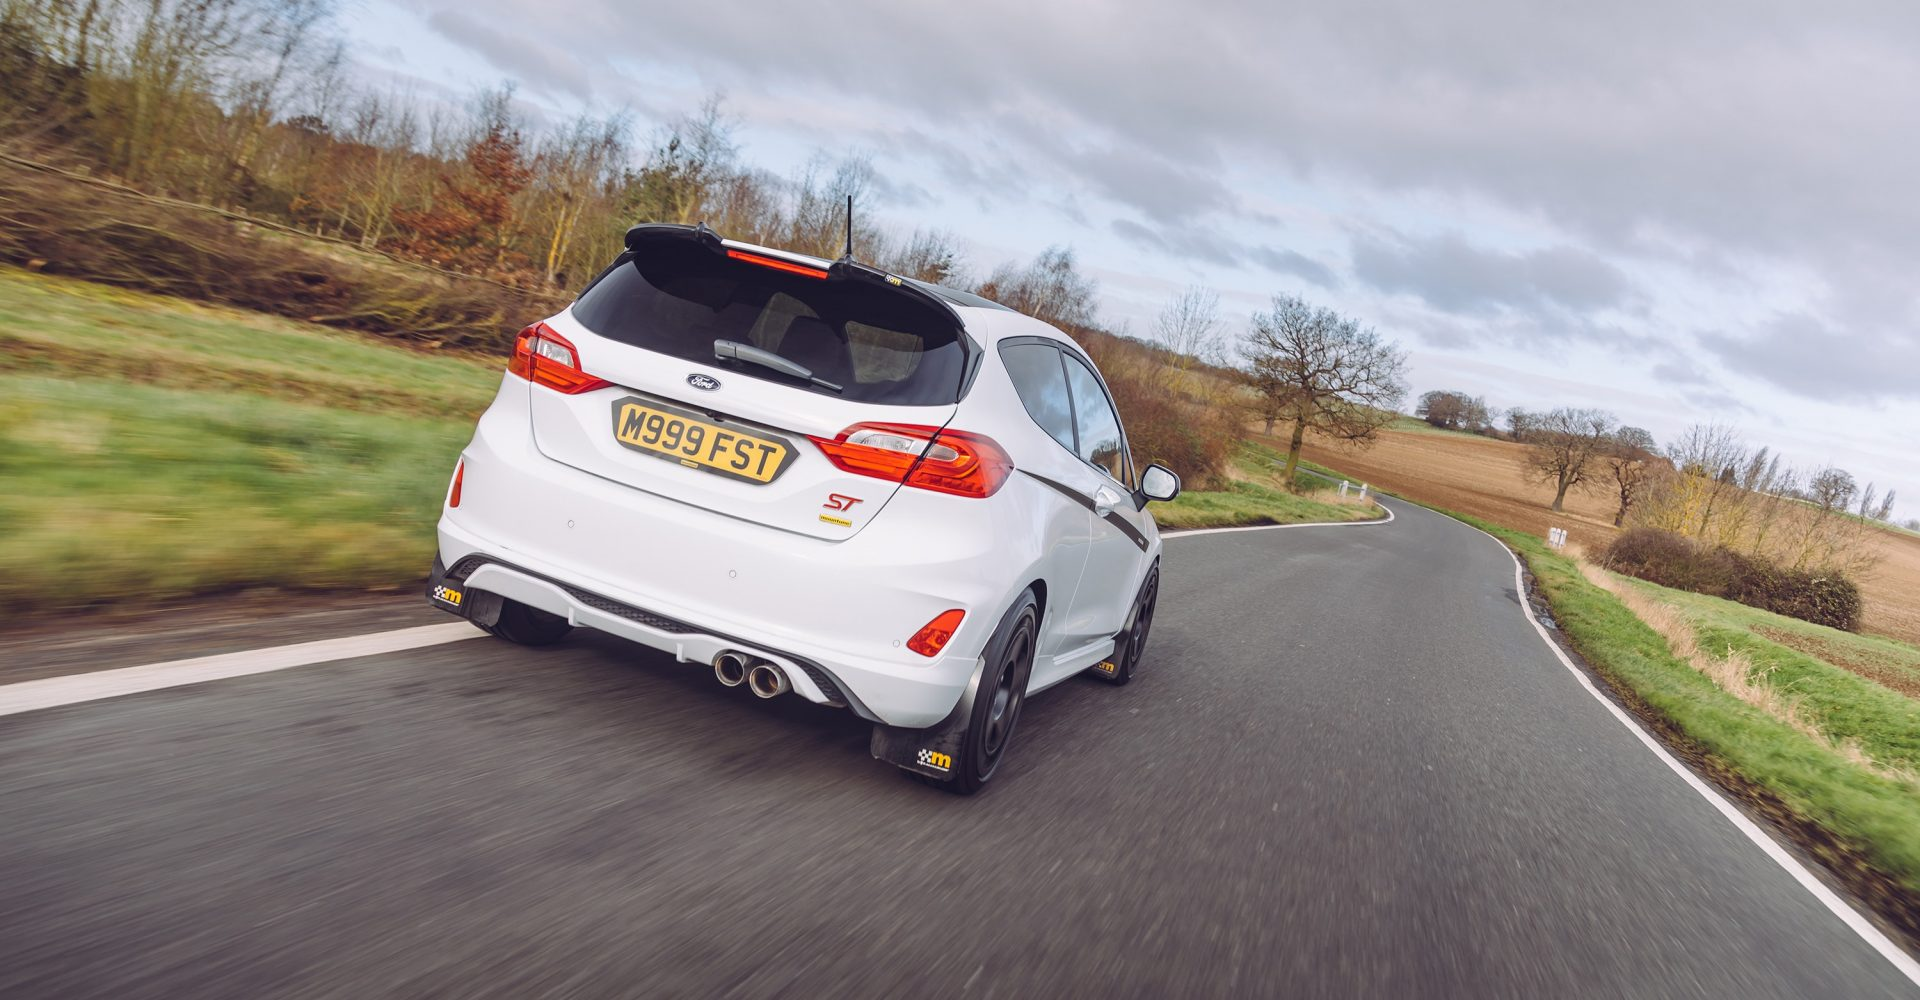 Mountune's latest upgrades takes the Ford Fiesta ST up to 232bhp